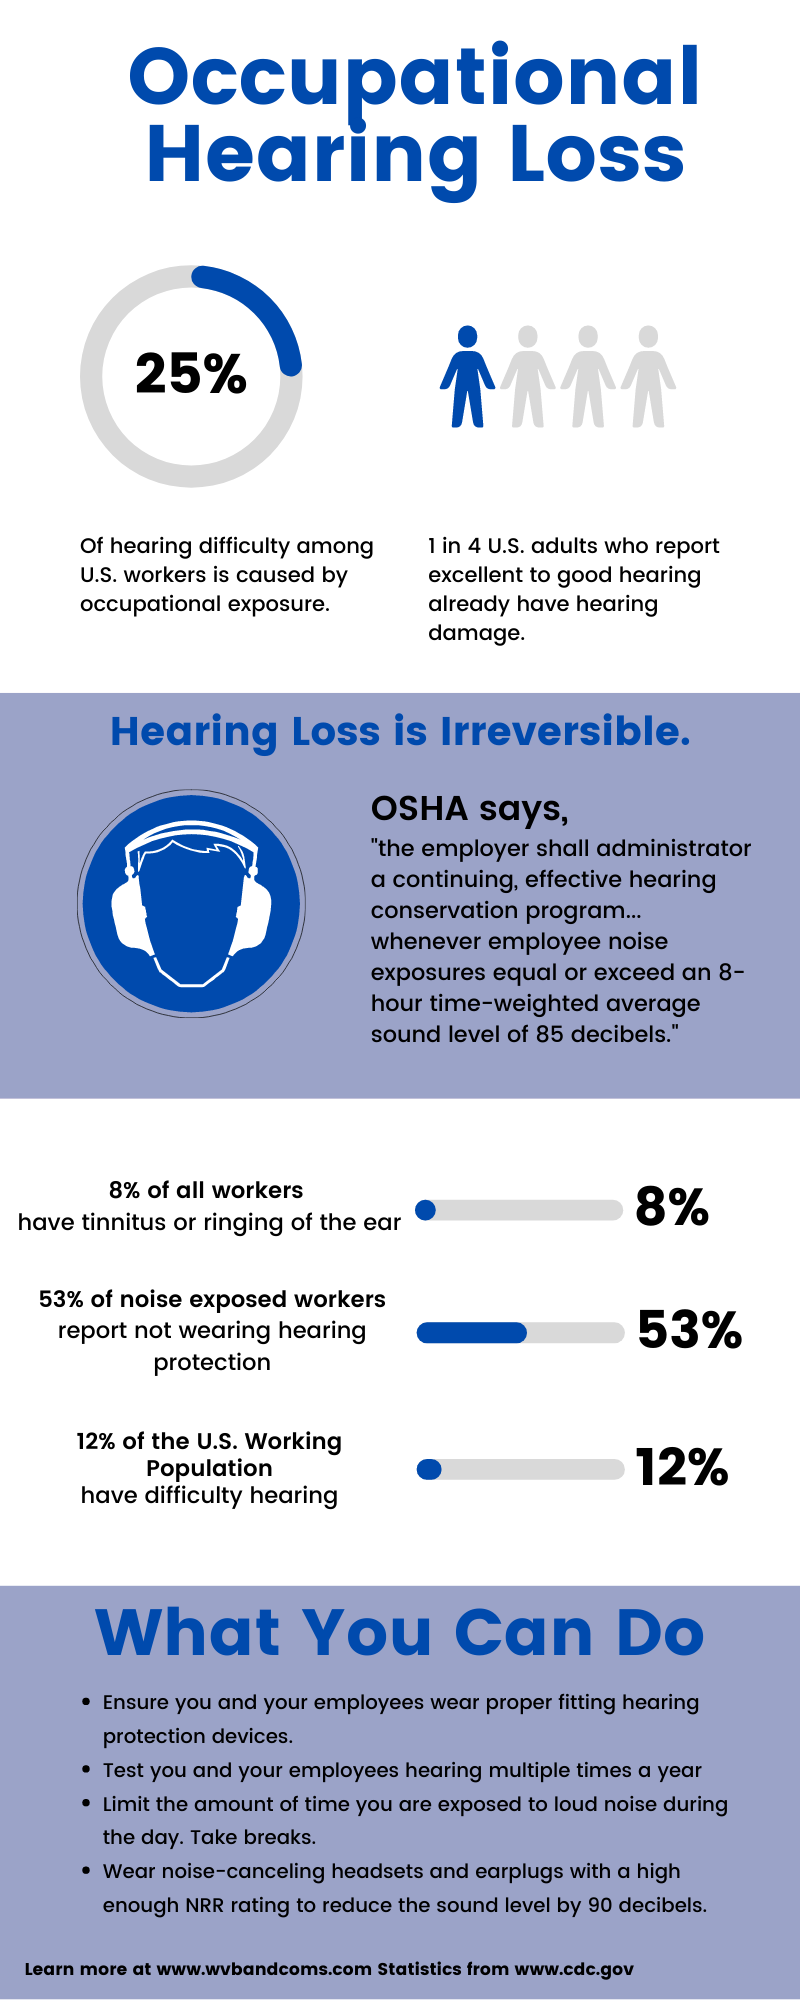 How to Protect Your Hearing From Noise in the Workplace